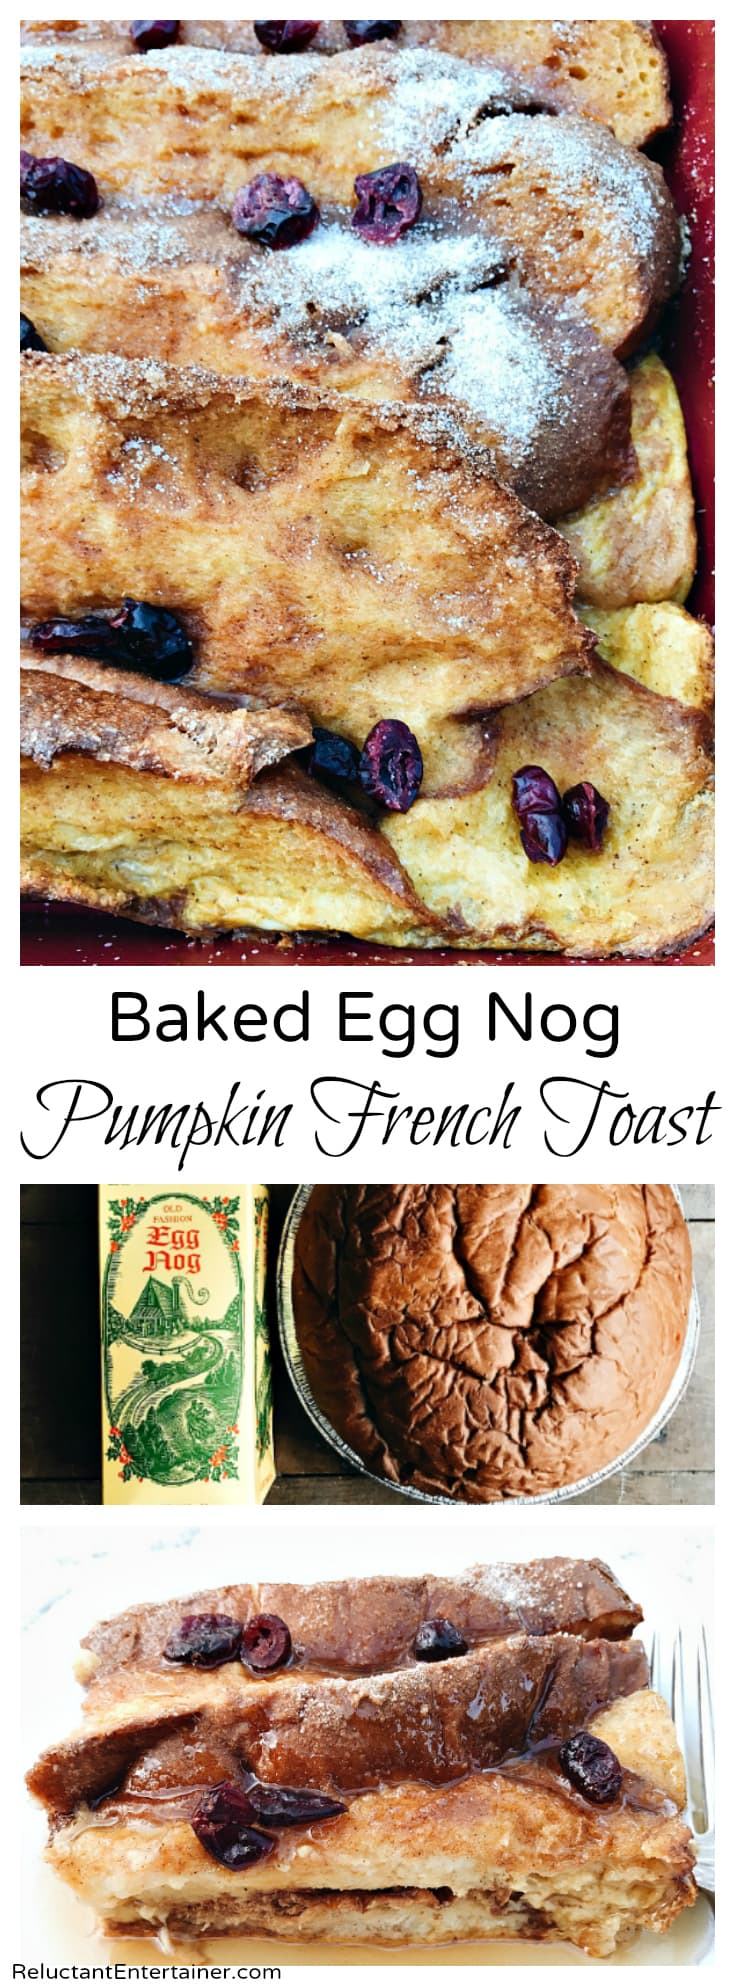 Baked Egg Nog Pumpkin French Toast